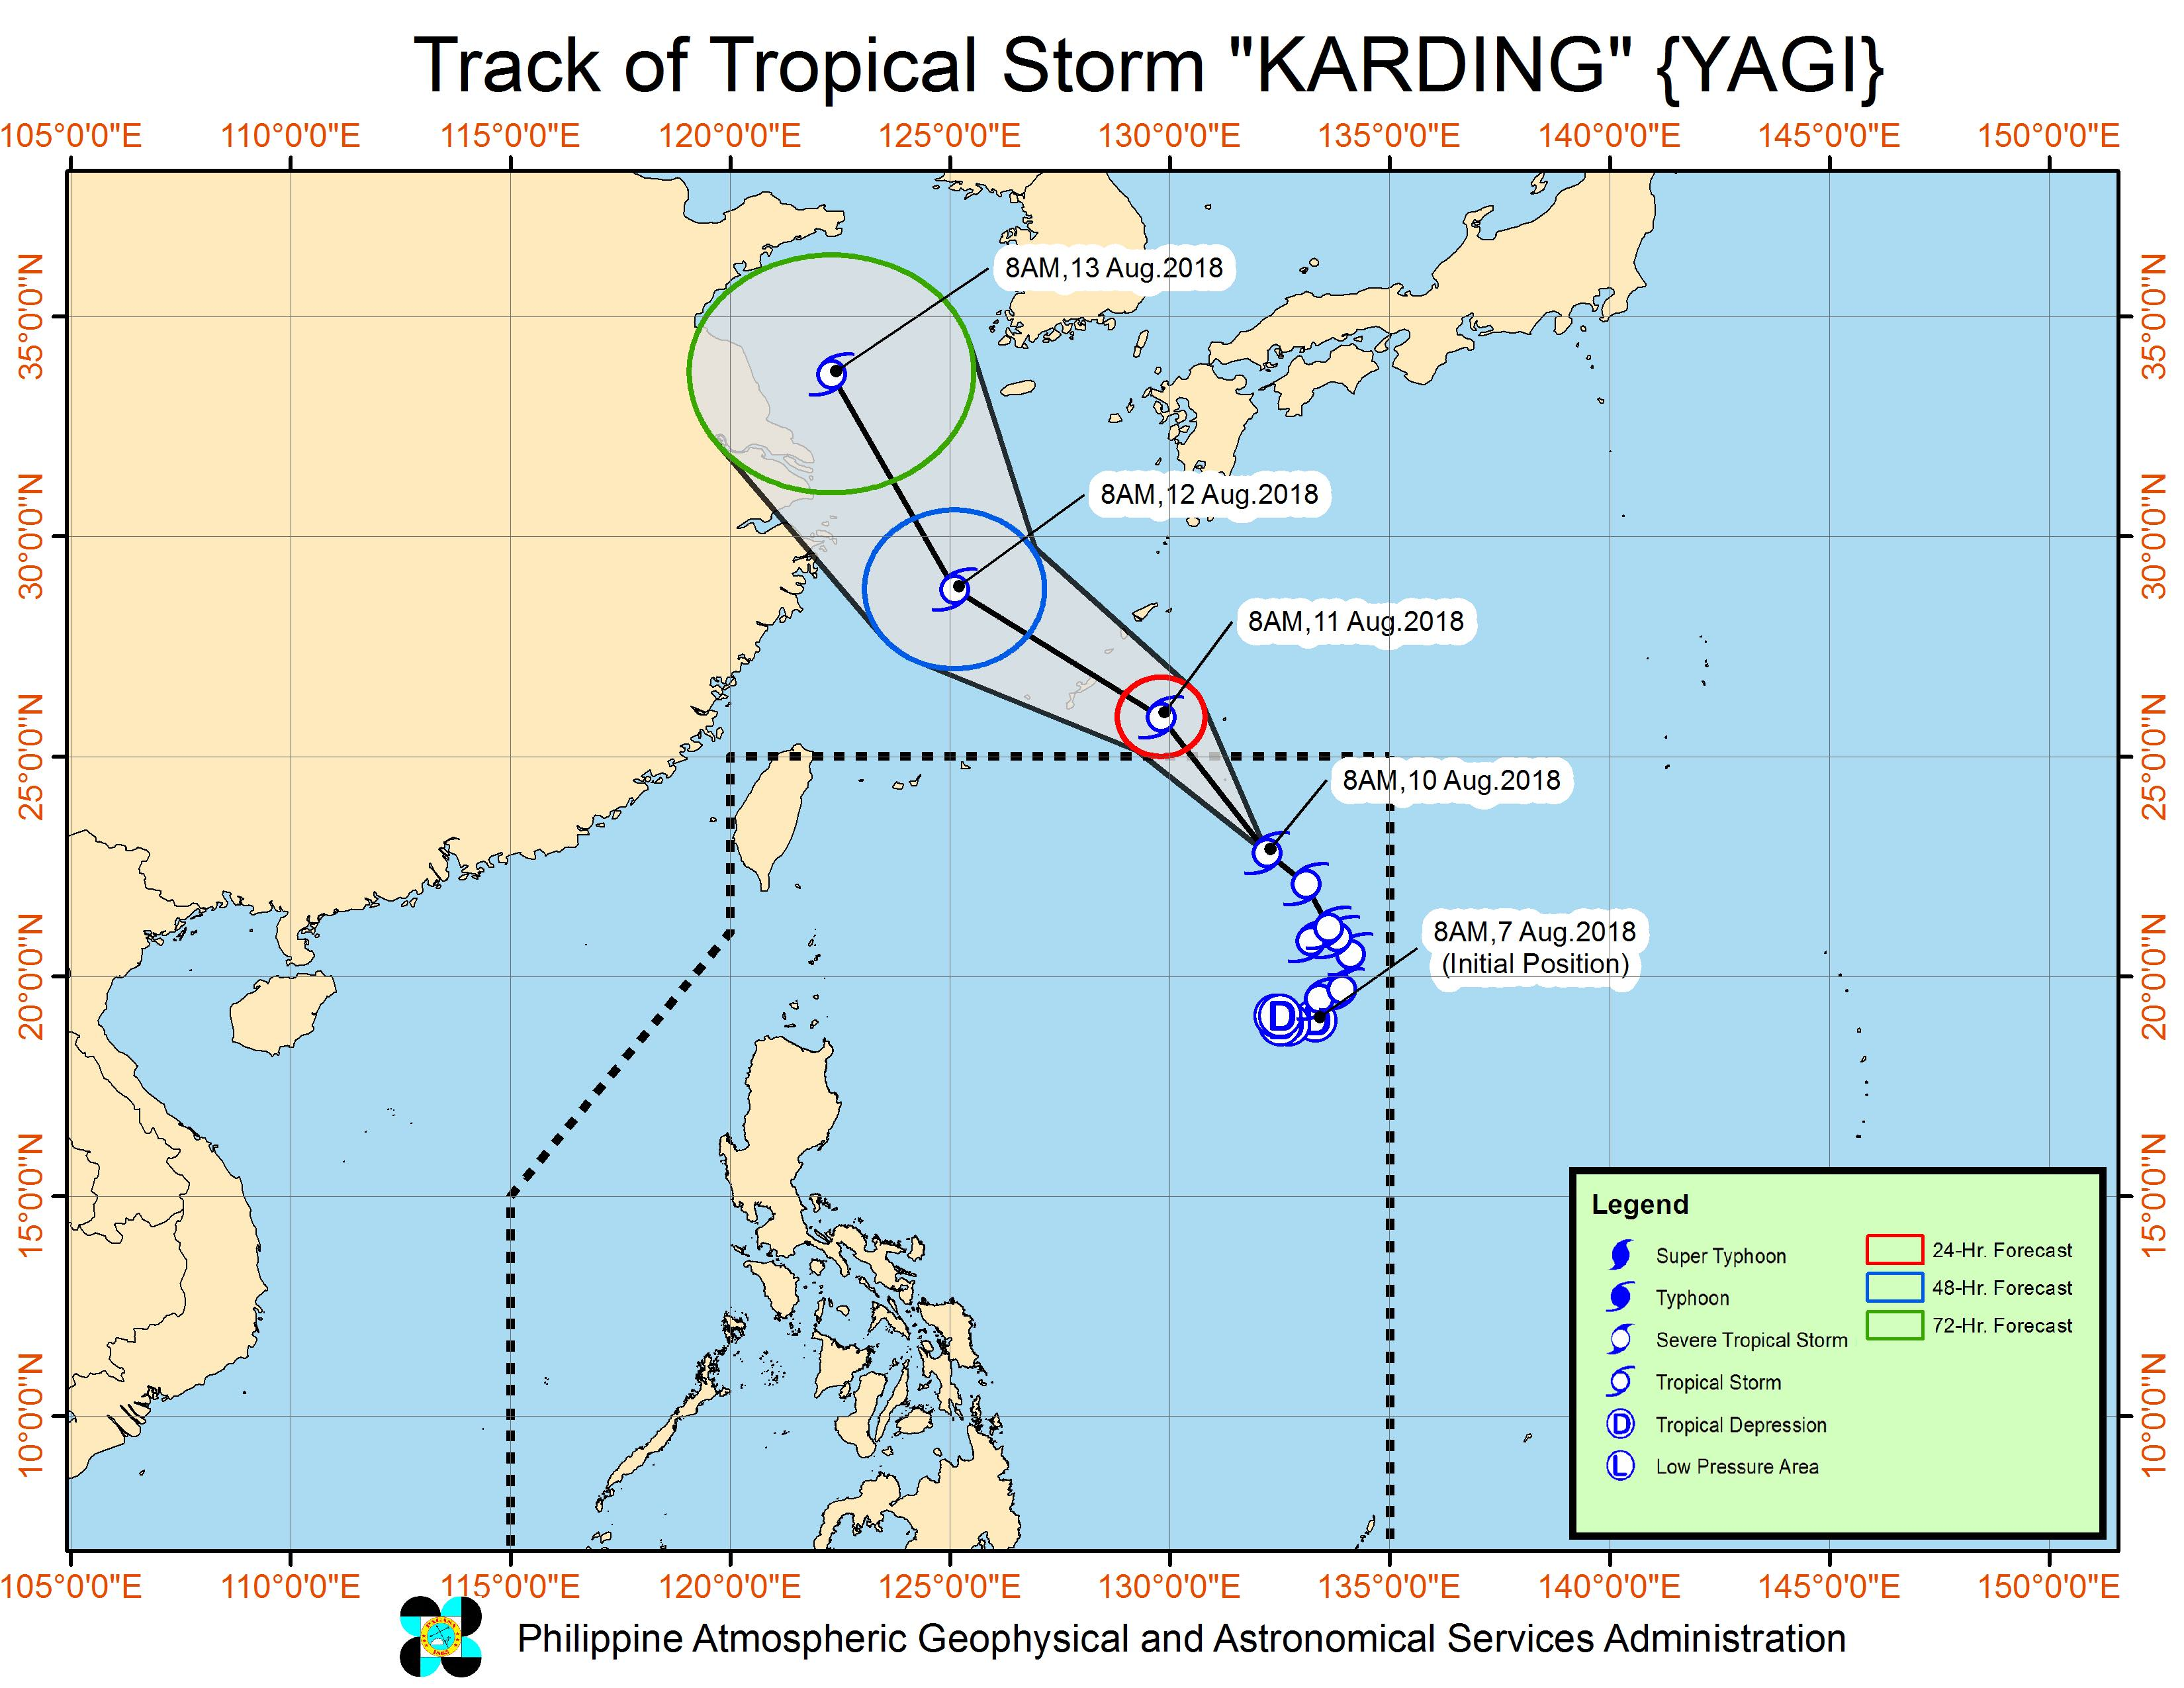 Forecast track of Tropical Storm Karding (Yagi) as of August 10, 2018, 11 am. Image from PAGASA